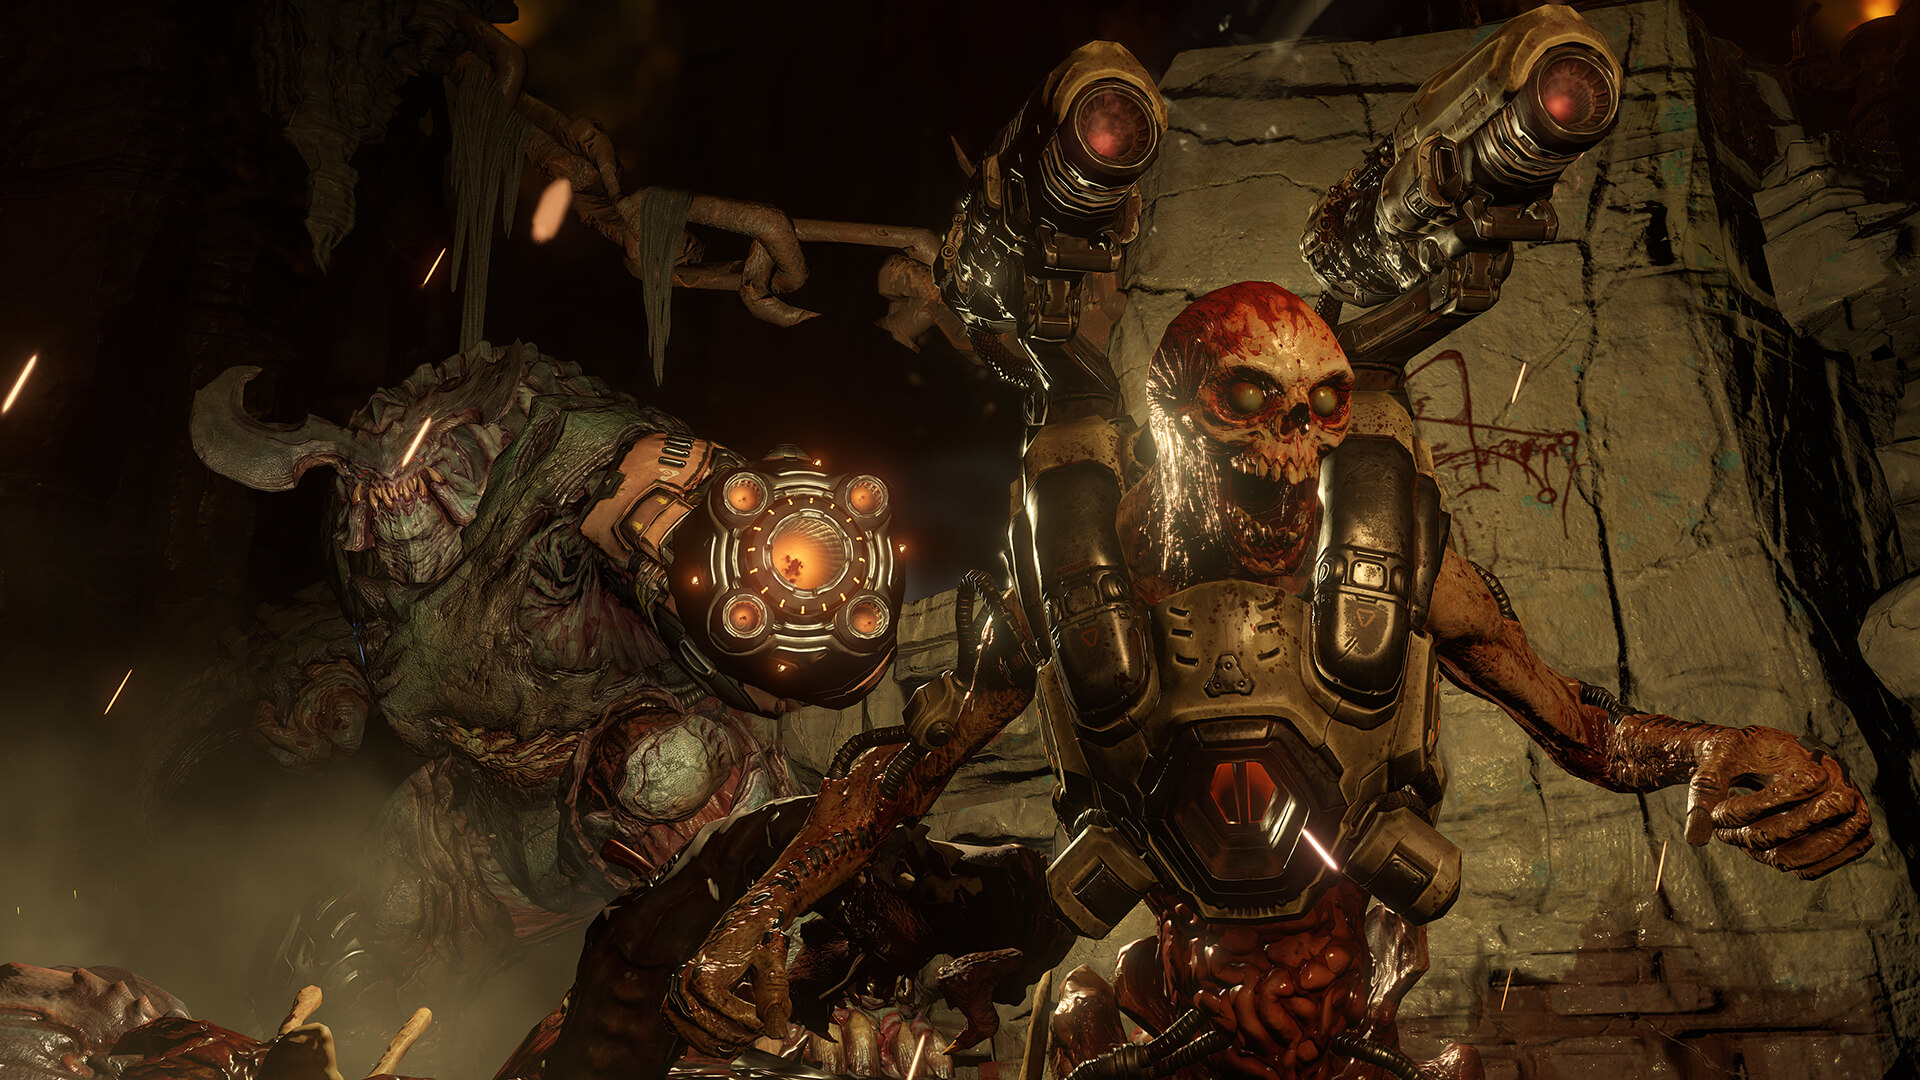 PC version of Doom will have lots of advanced rendering options, no framerate cap